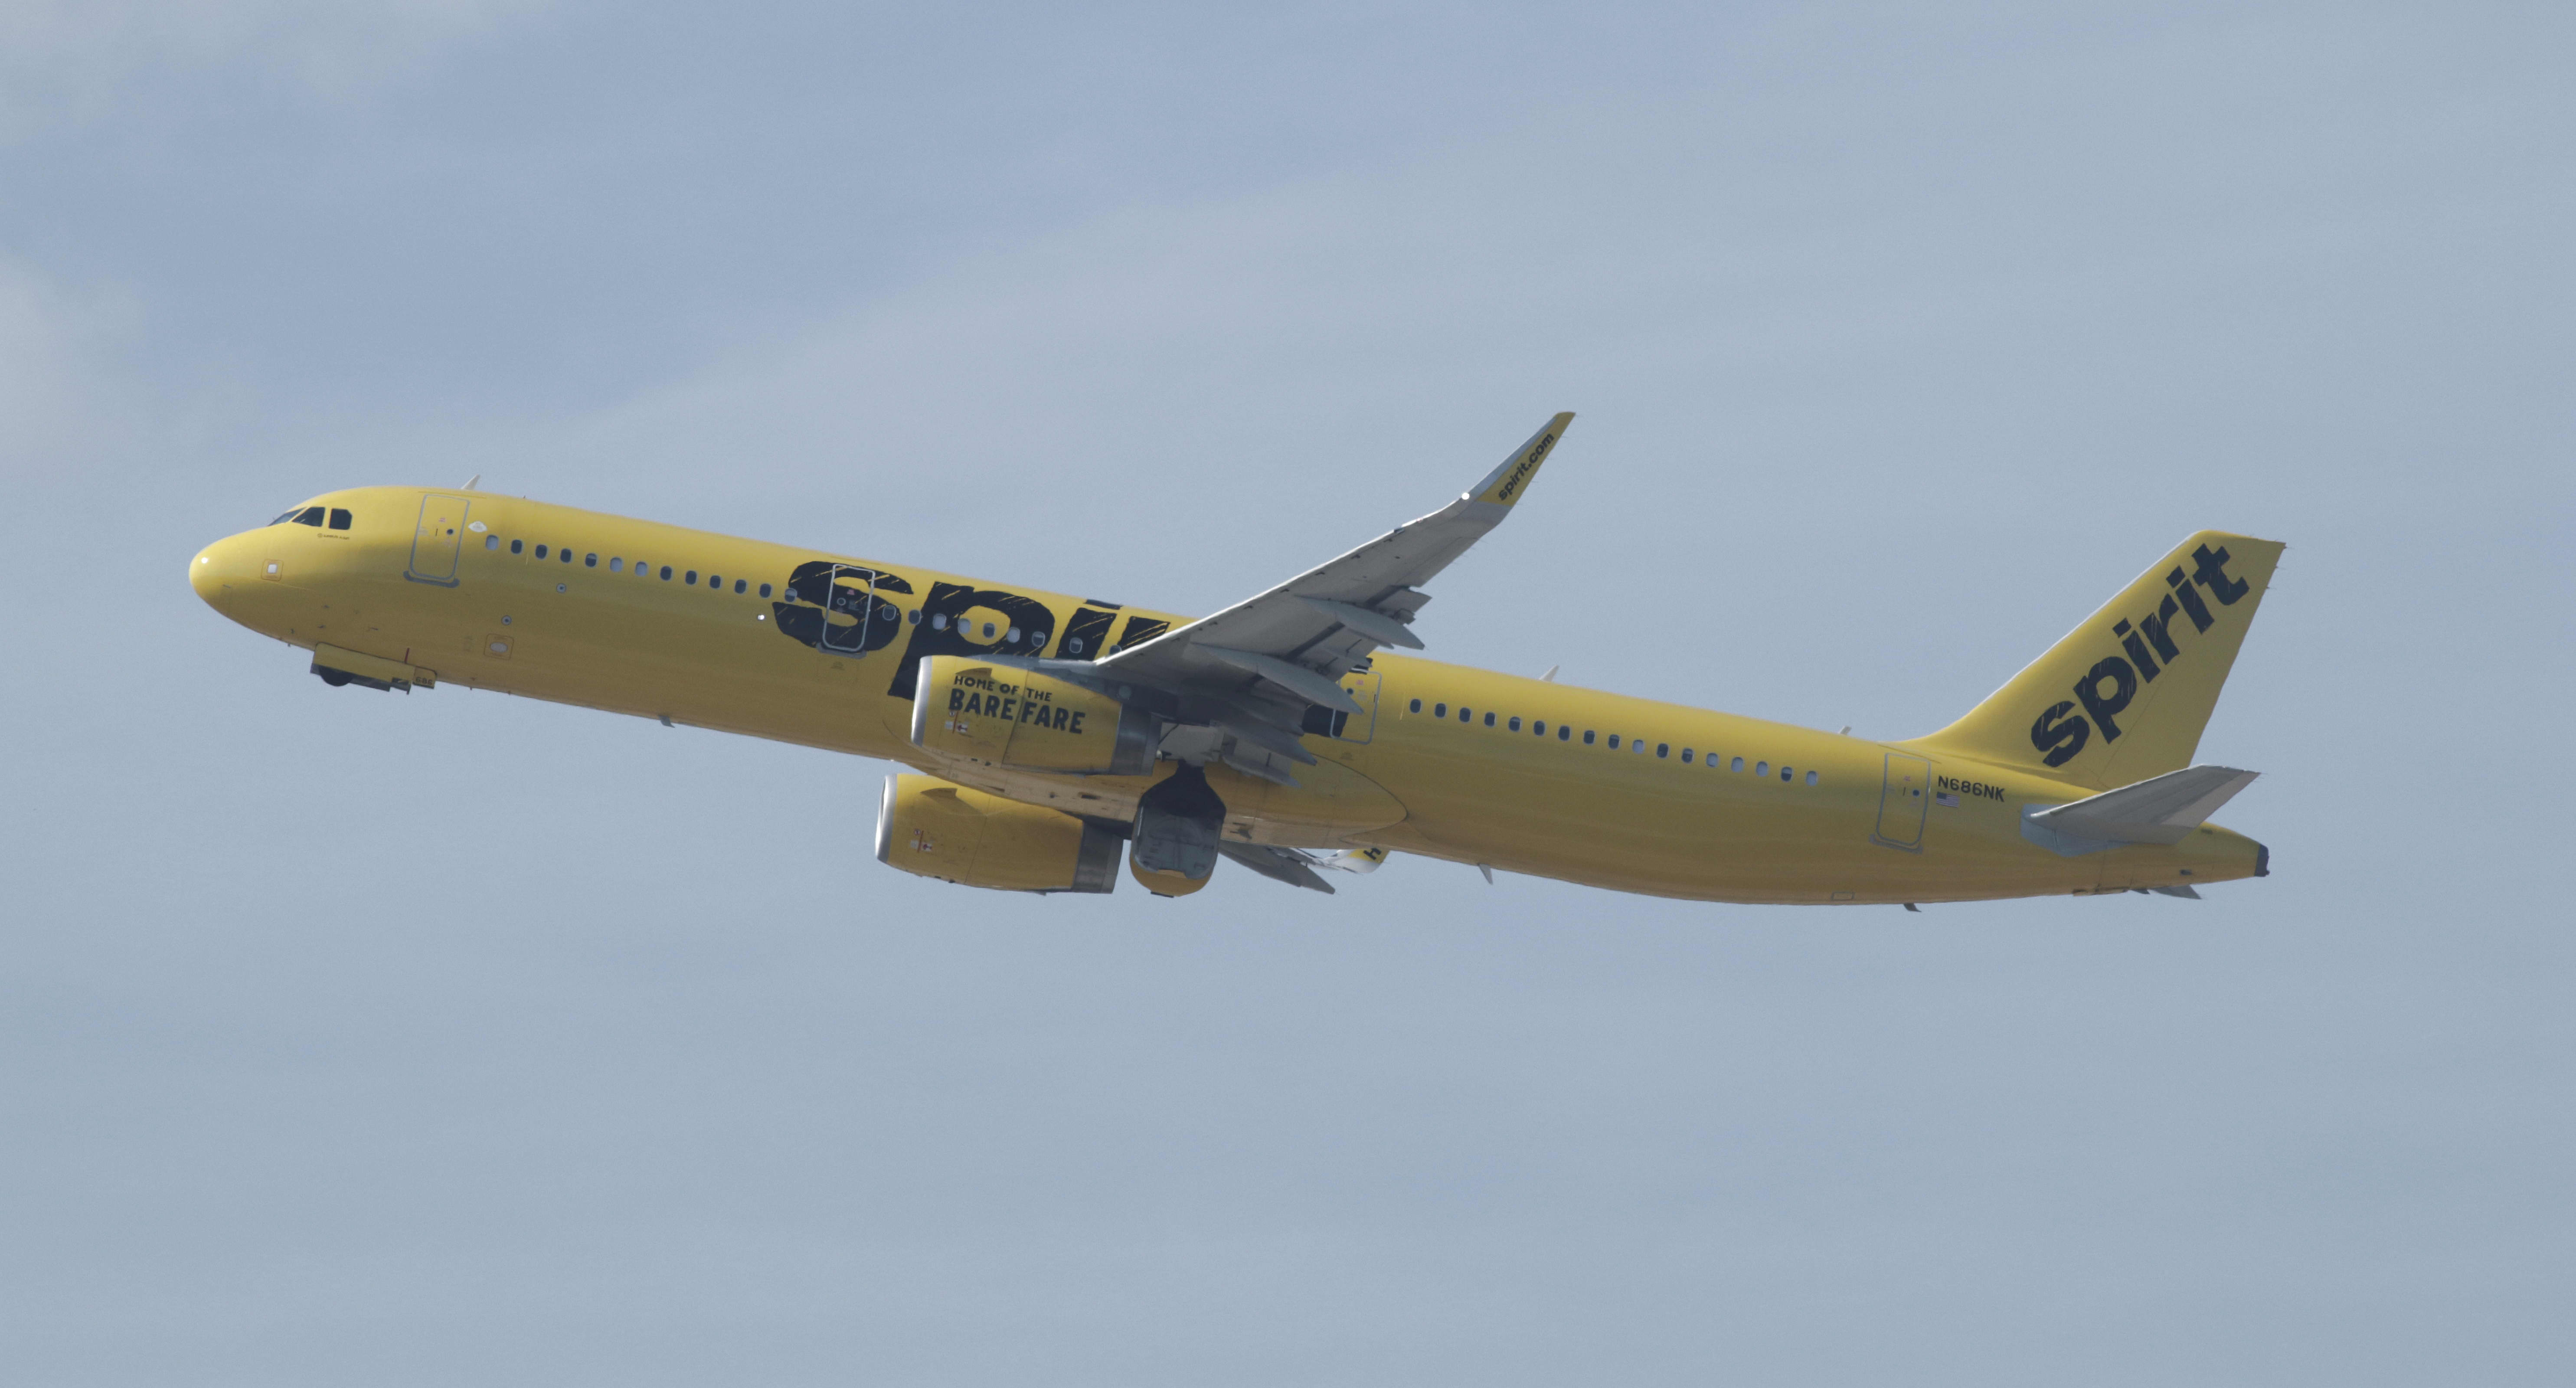 Airbus to sell 100 jets to US carrier Spirit Airlines